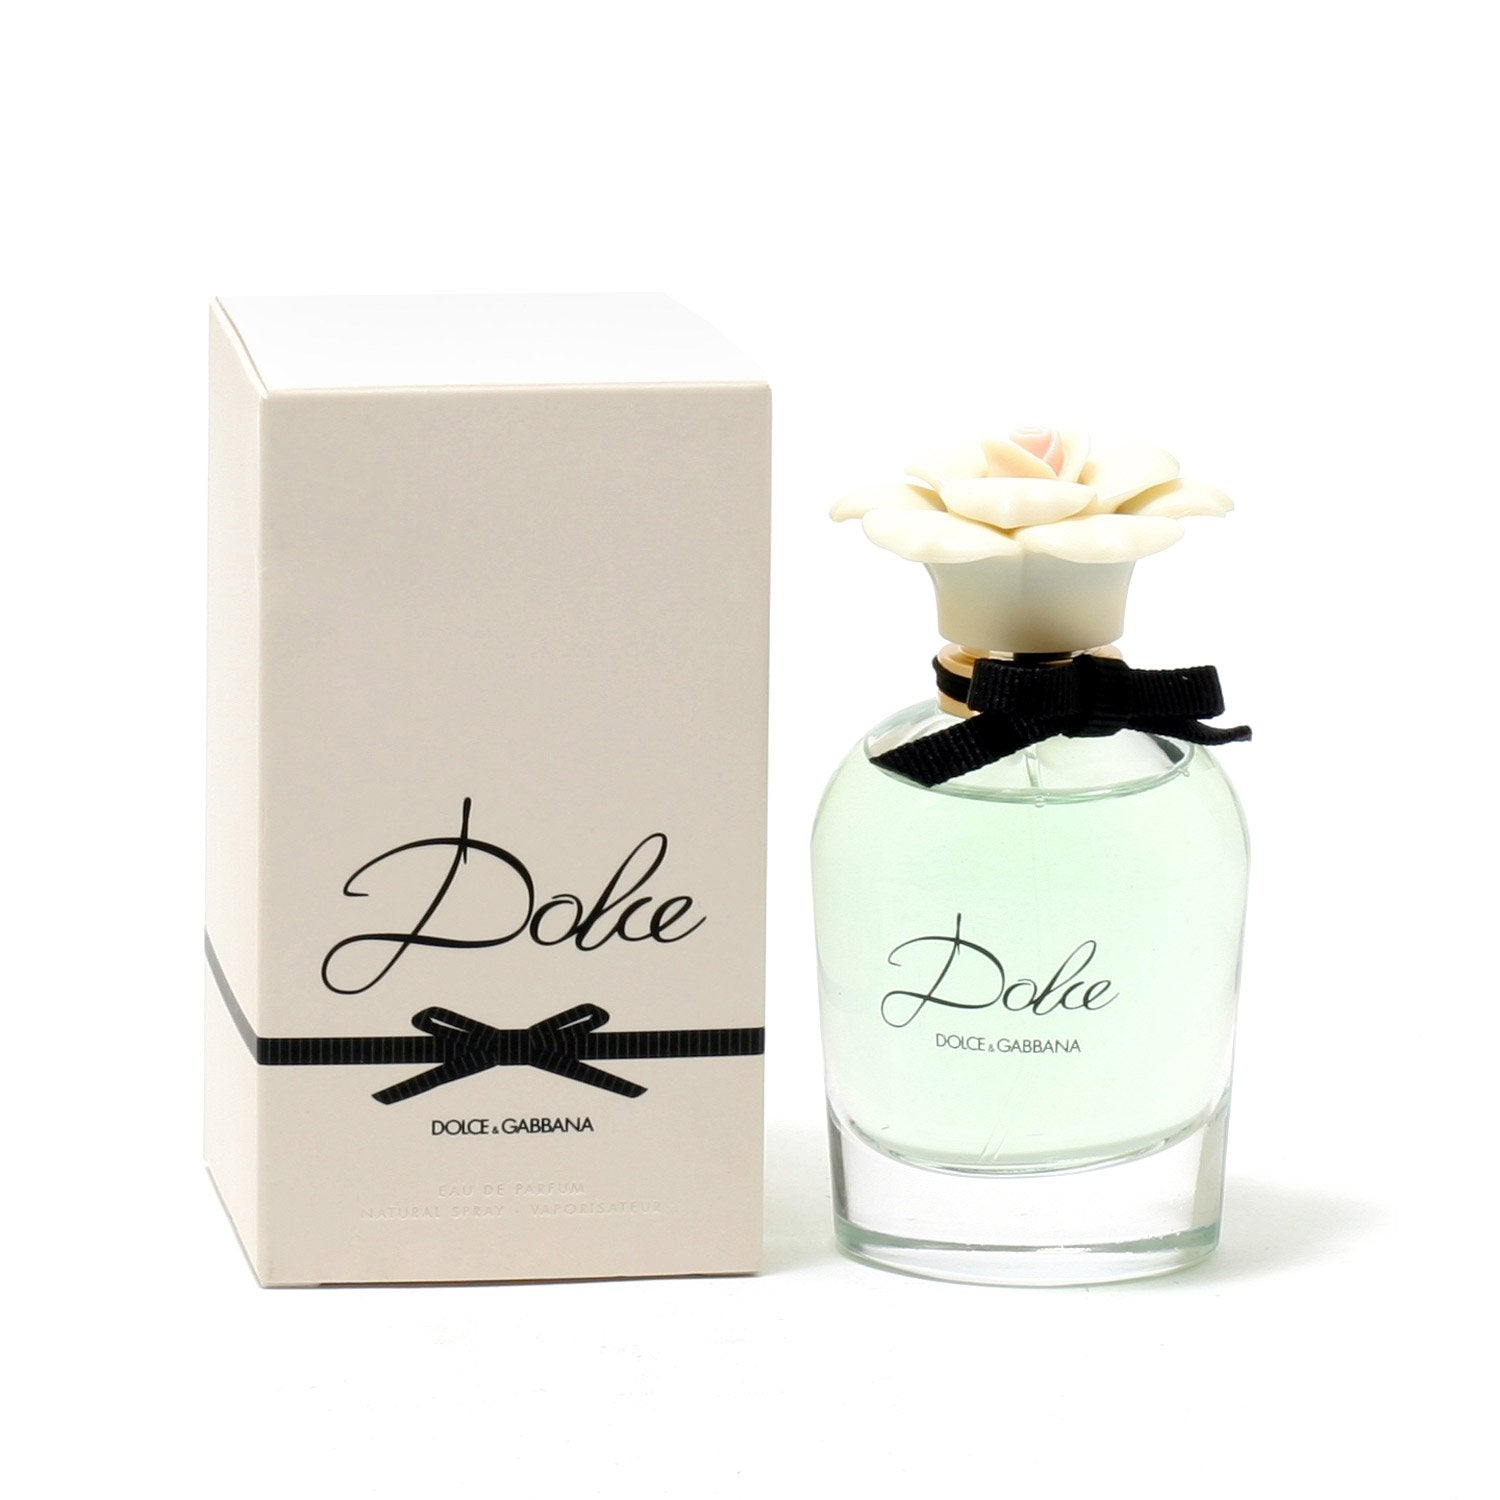 Perfume - DOLCE & GABBANA DOLCE FOR WOMEN - EAU DE PARFUM SPRAY